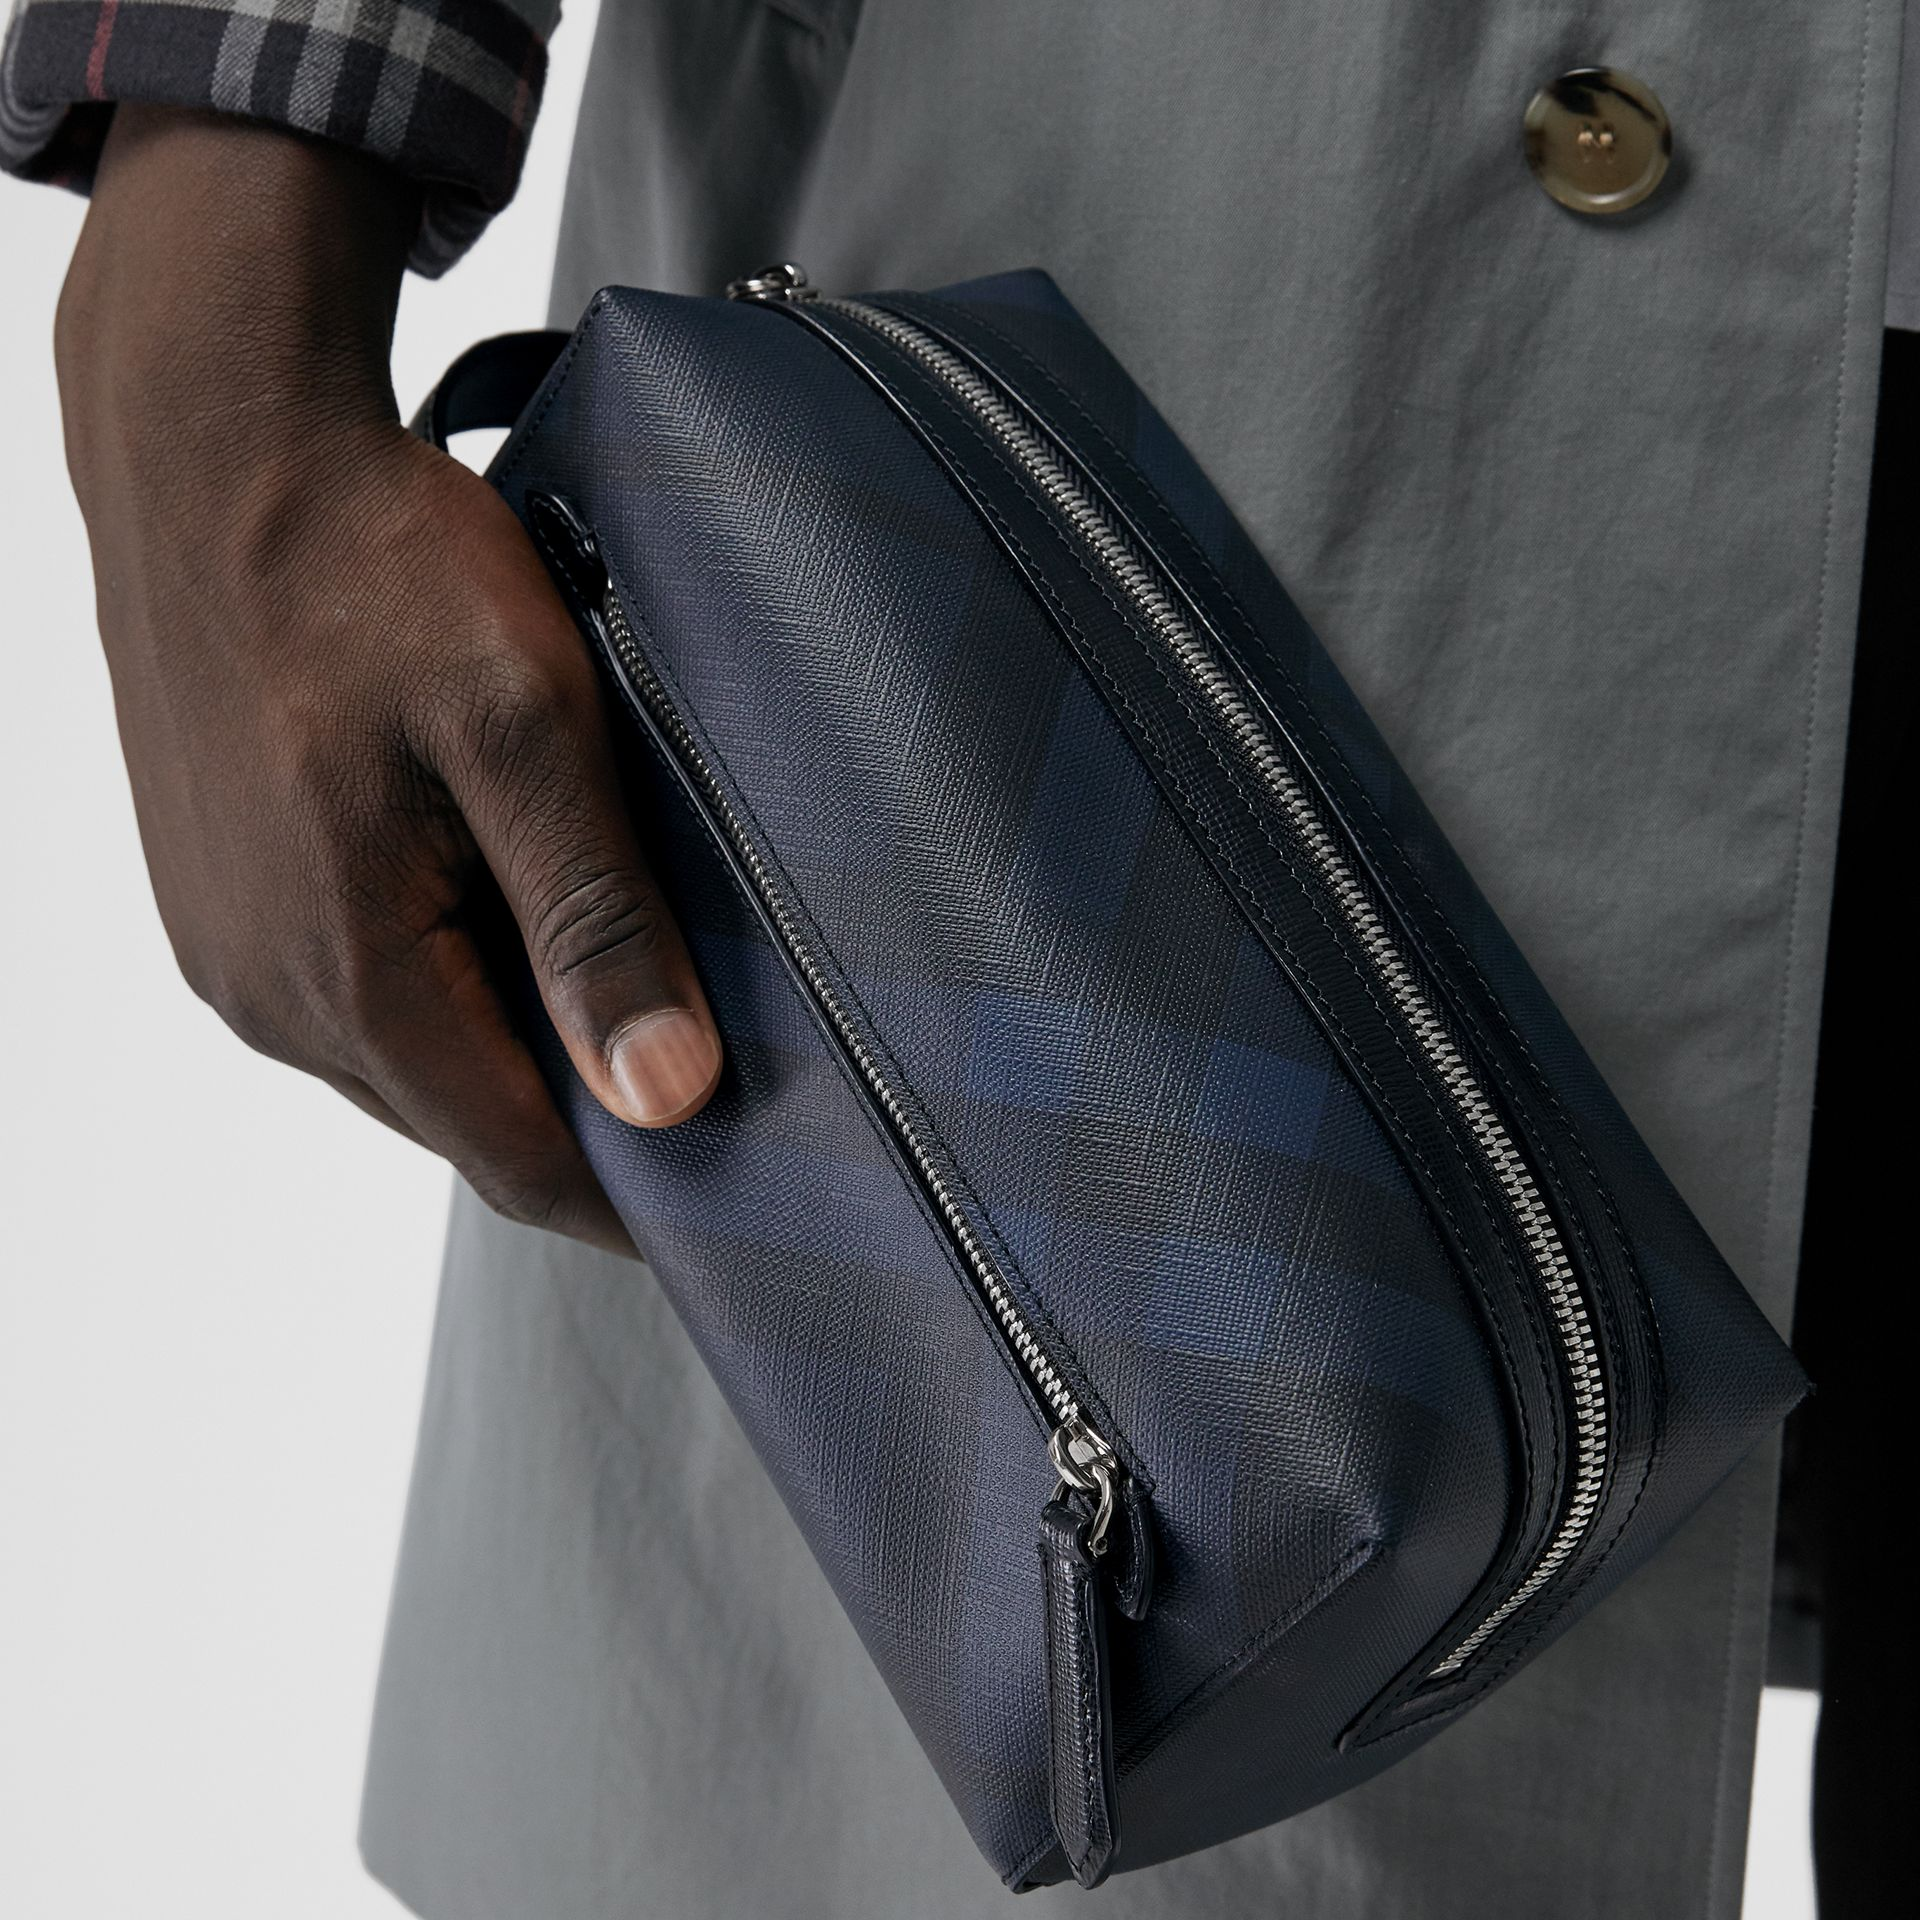 Trousse con pelle e motivo London check (Navy/nero) | Burberry - immagine della galleria 3